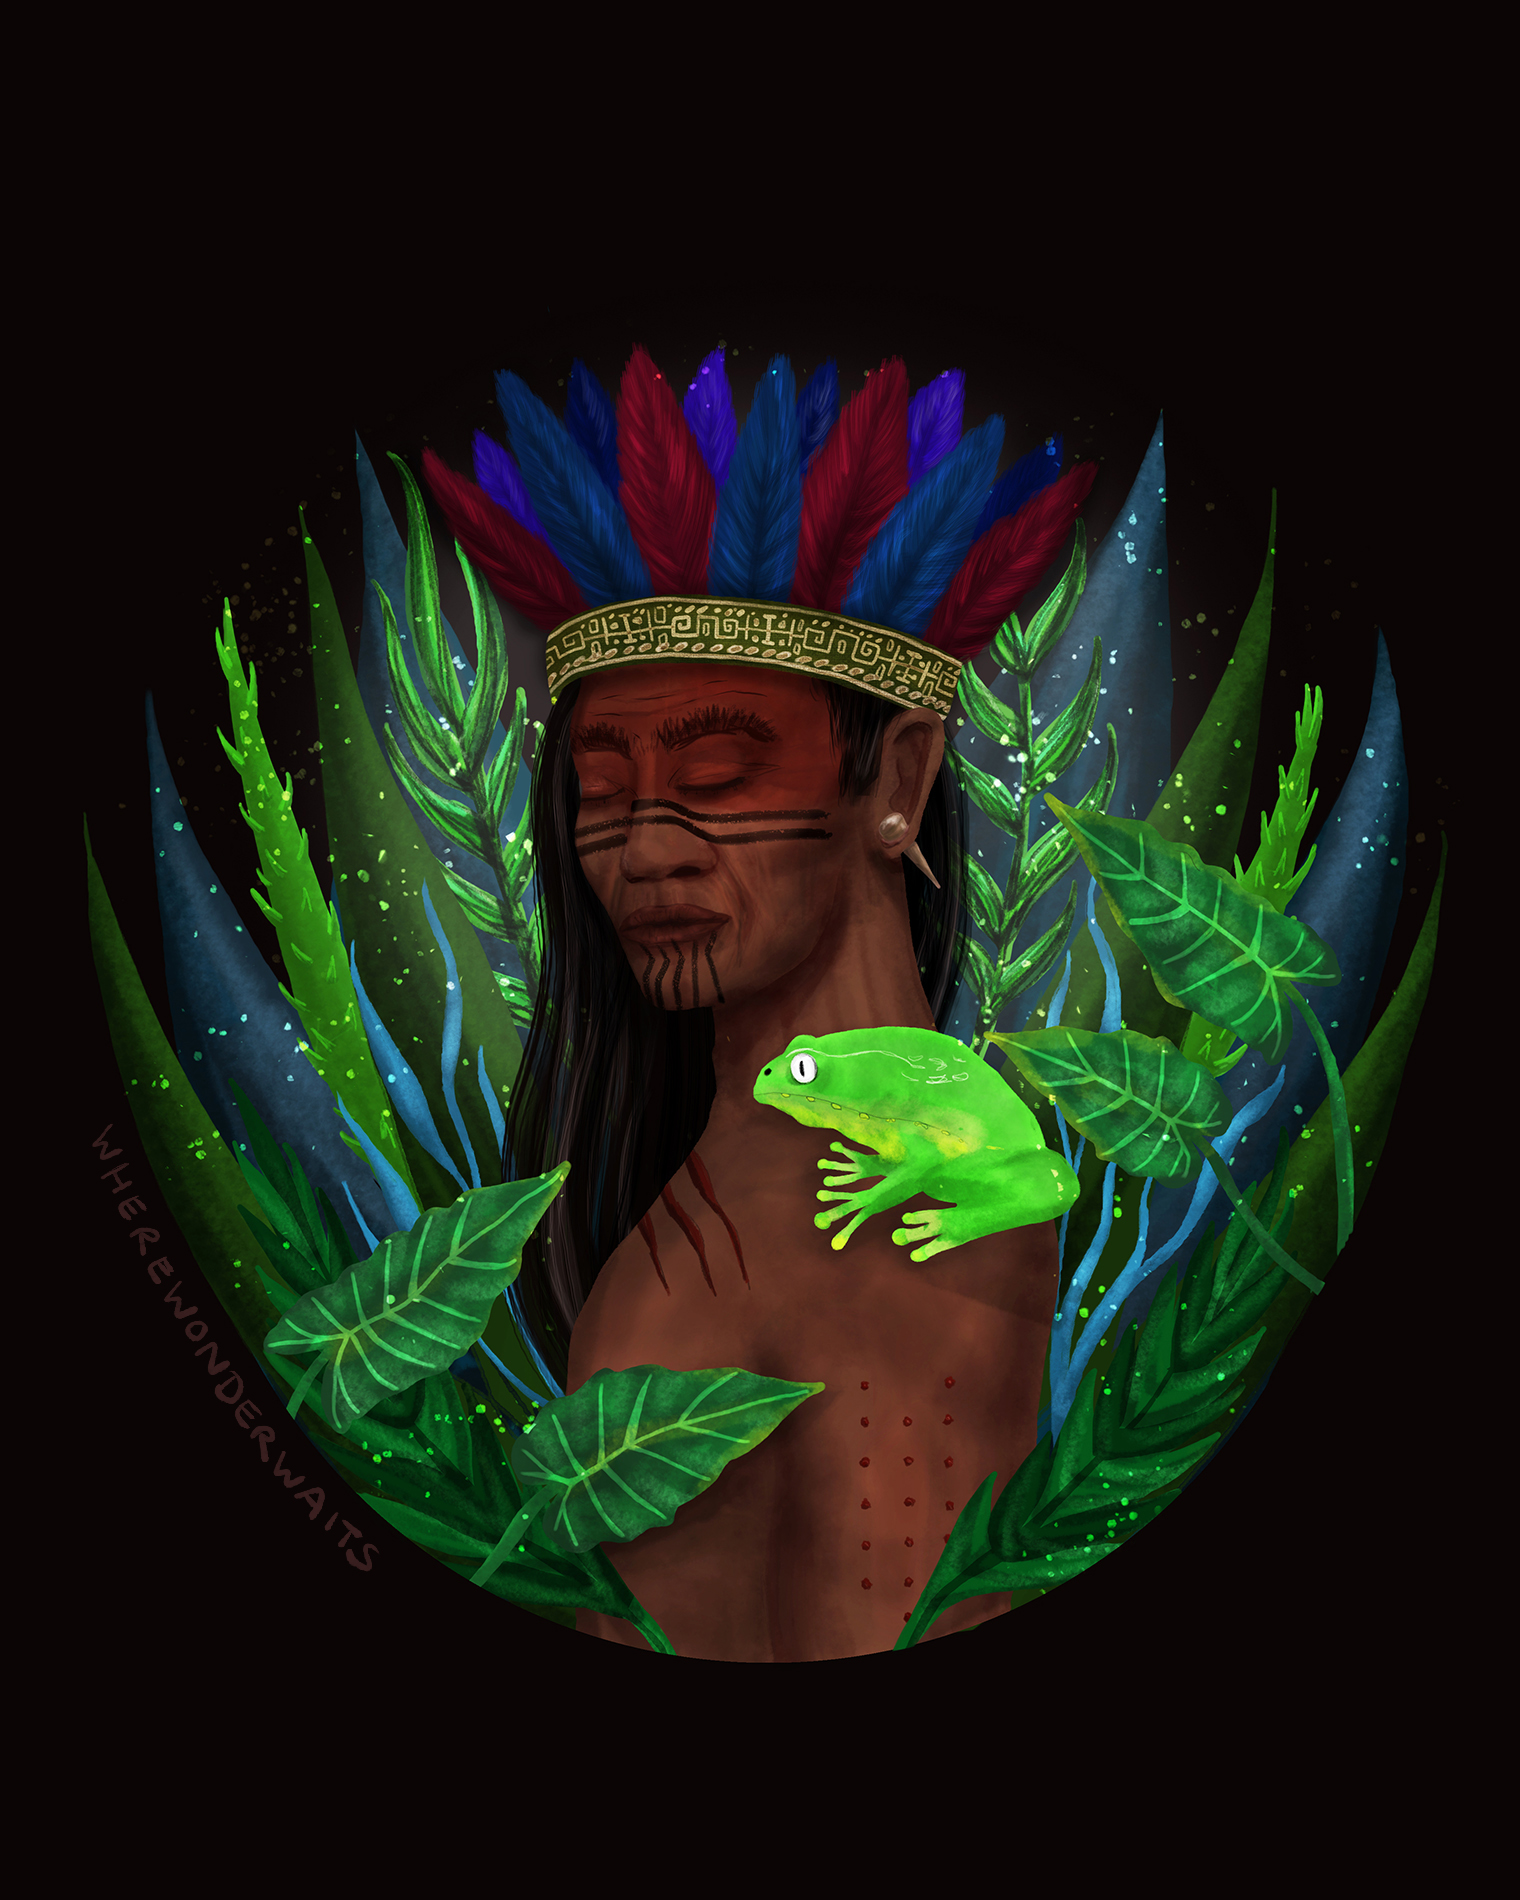 A digital painting that shows an indigenious warrior with a Kambo frog on his shoulder and burn marks on his arm.